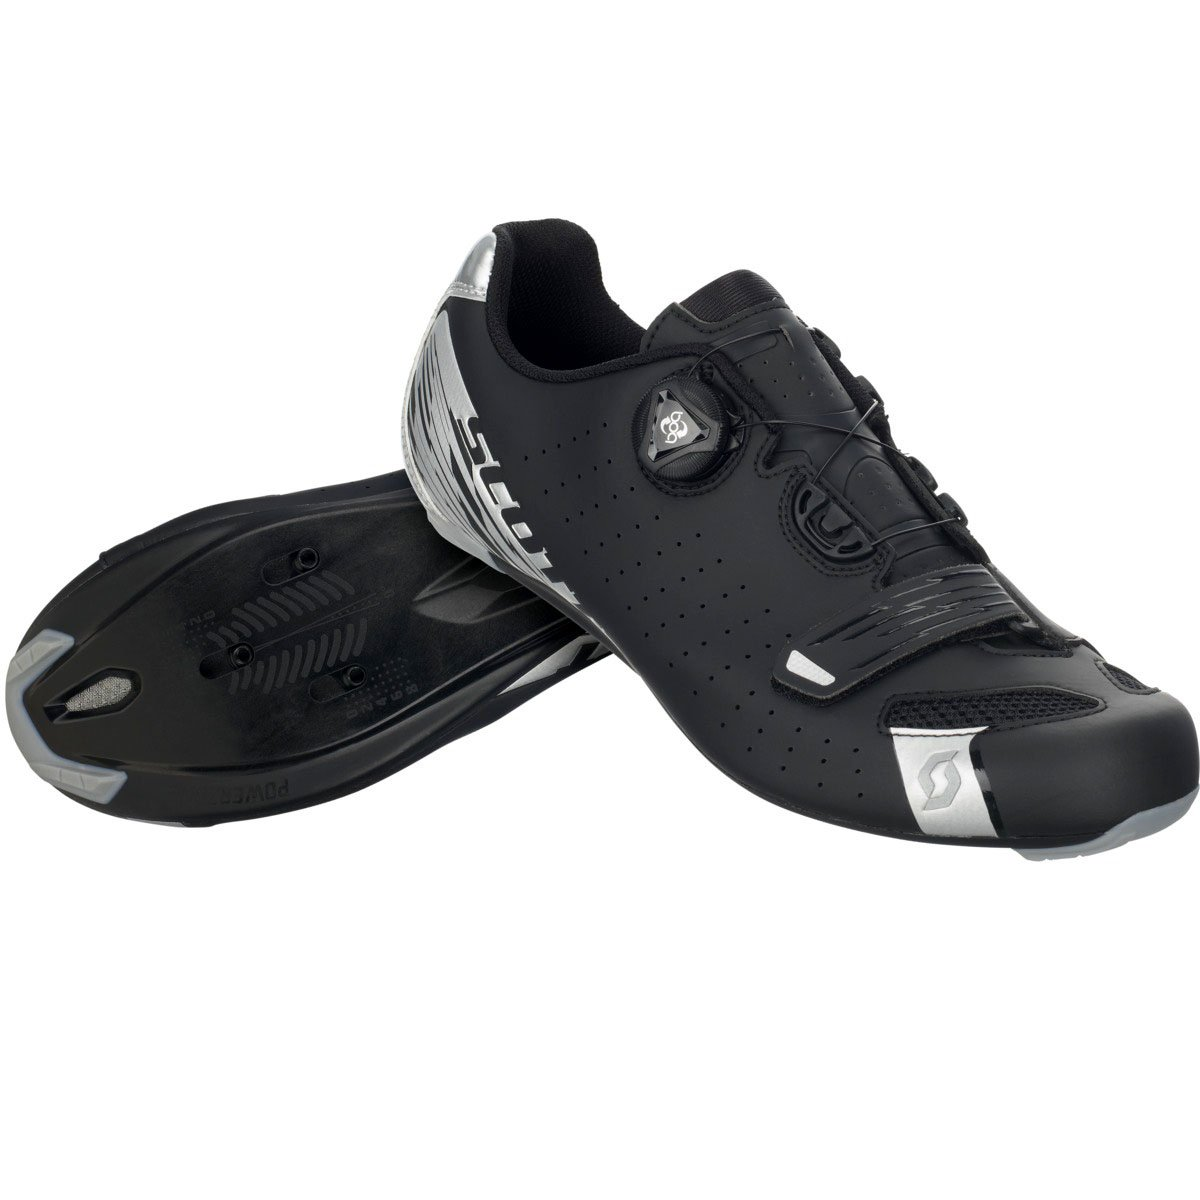 Scott - schuhe scott road comp boa schwarz Silber boa closure system - road comp boa - 42